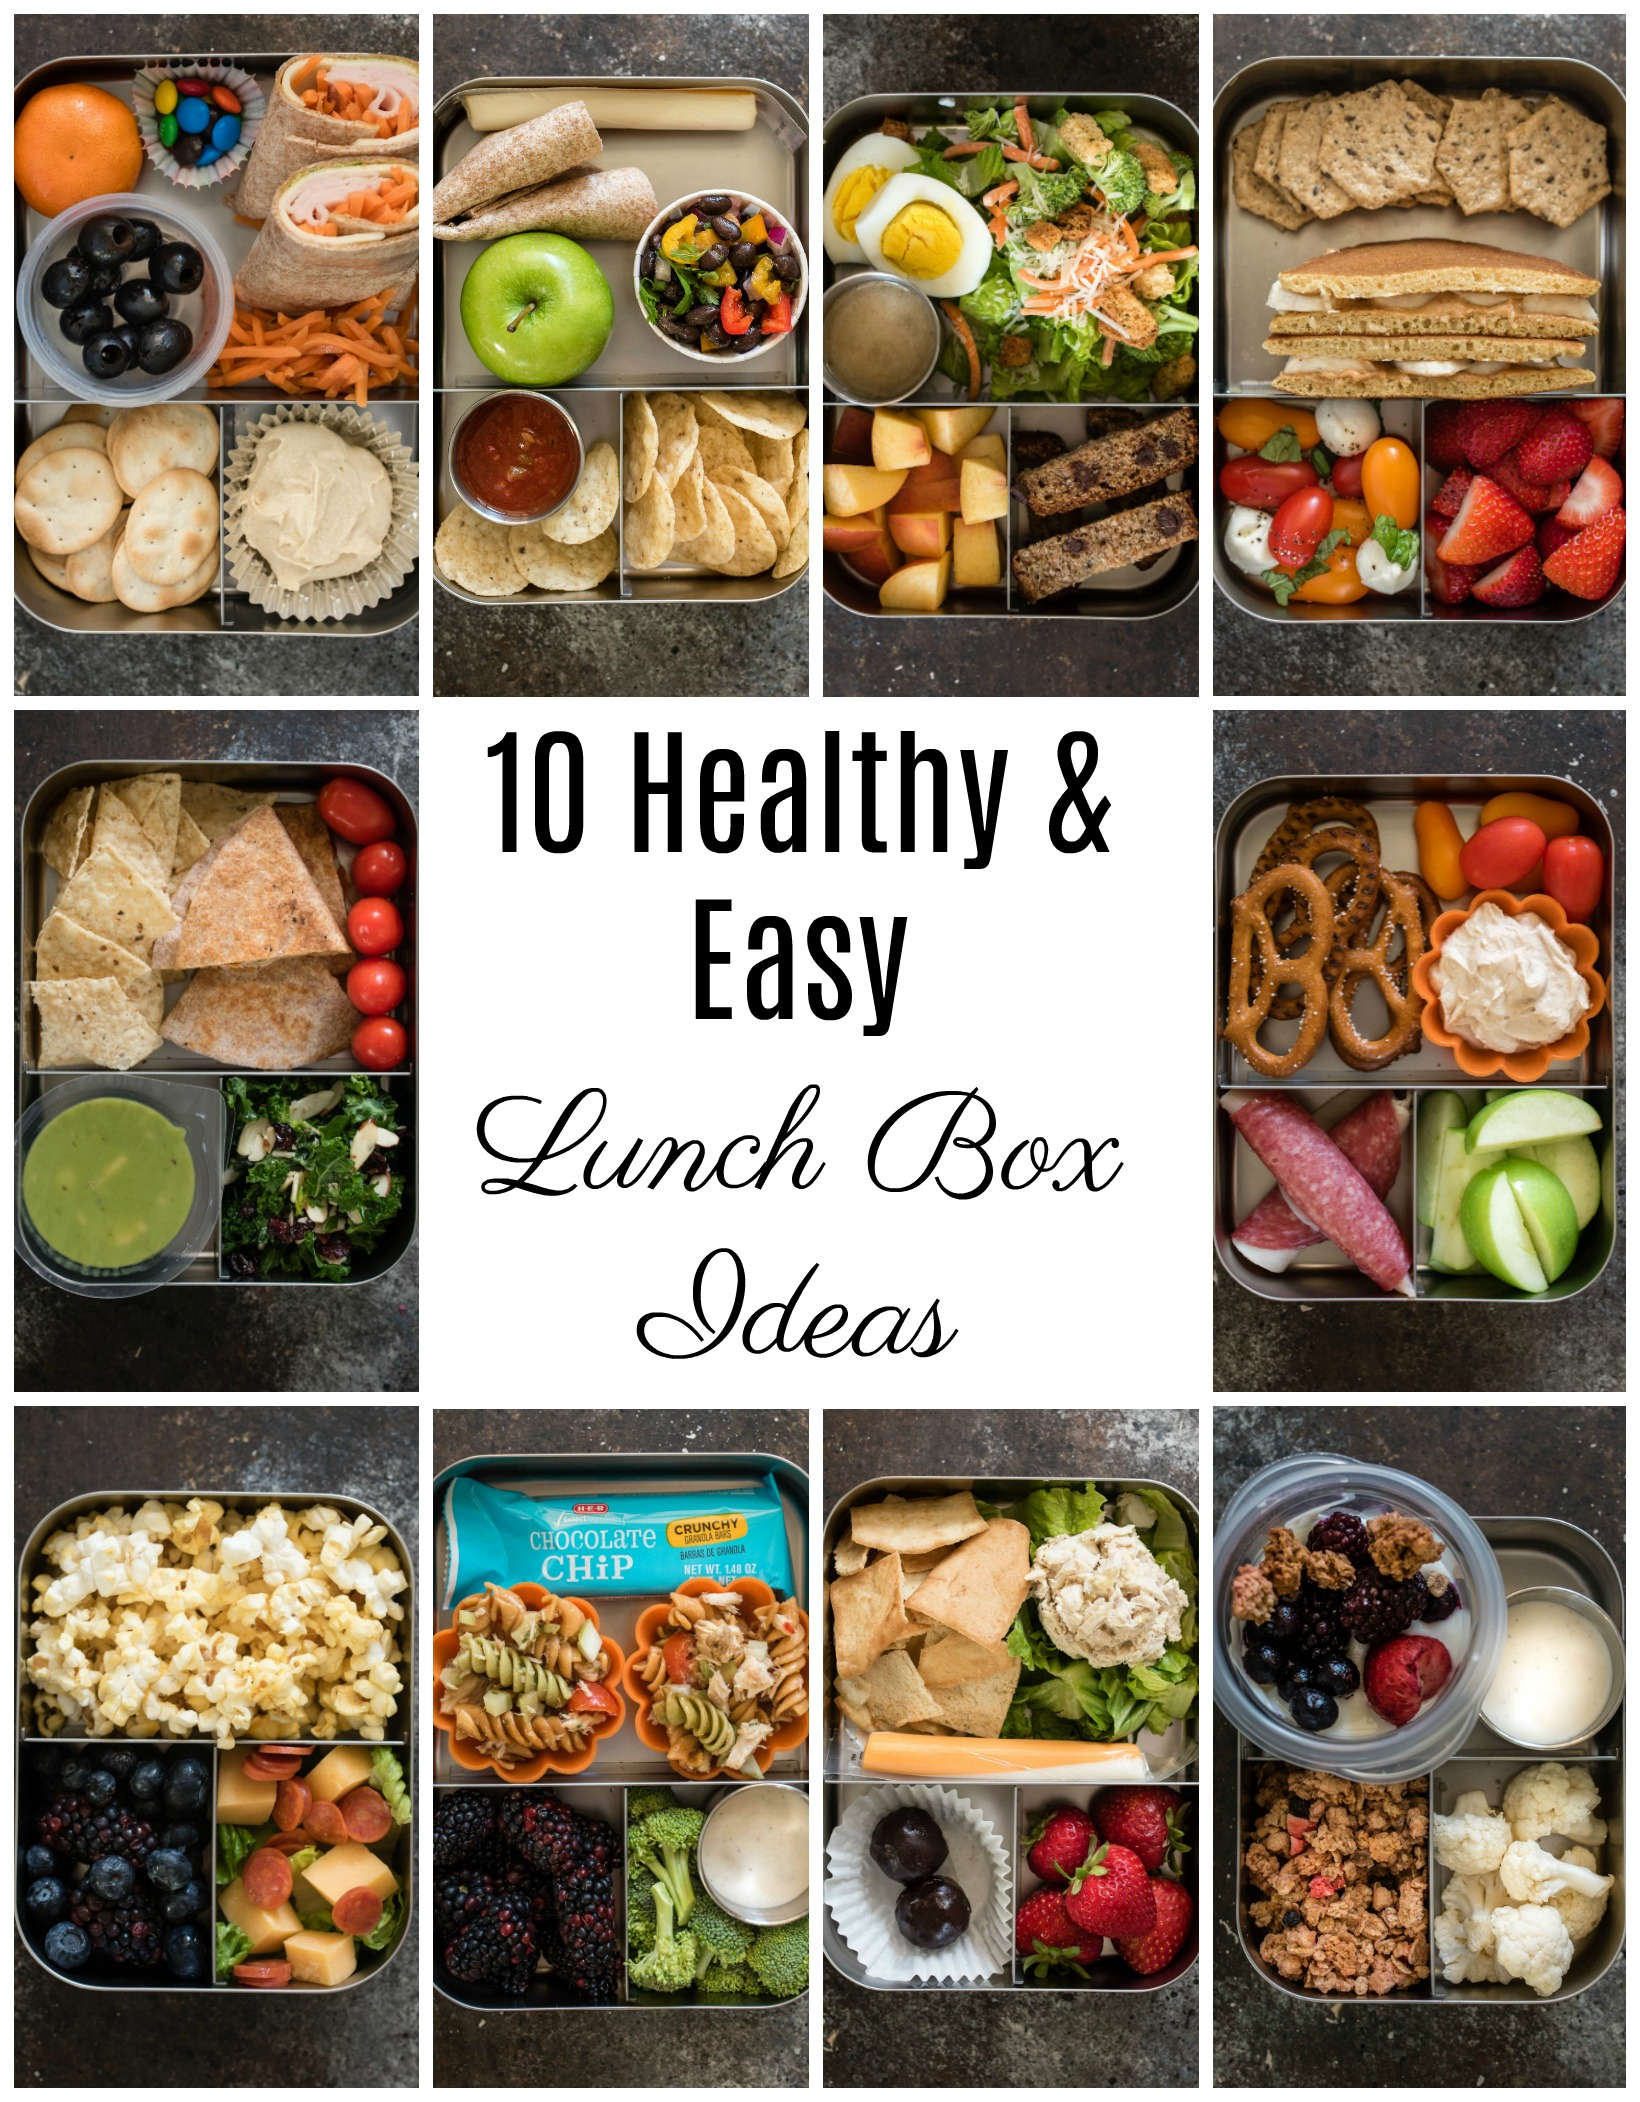 Pancake pb banana sandwich and 10 healthy lunch box ideas enjoy these 10 nutritious well balanced kid and adult friendly lunch forumfinder Image collections